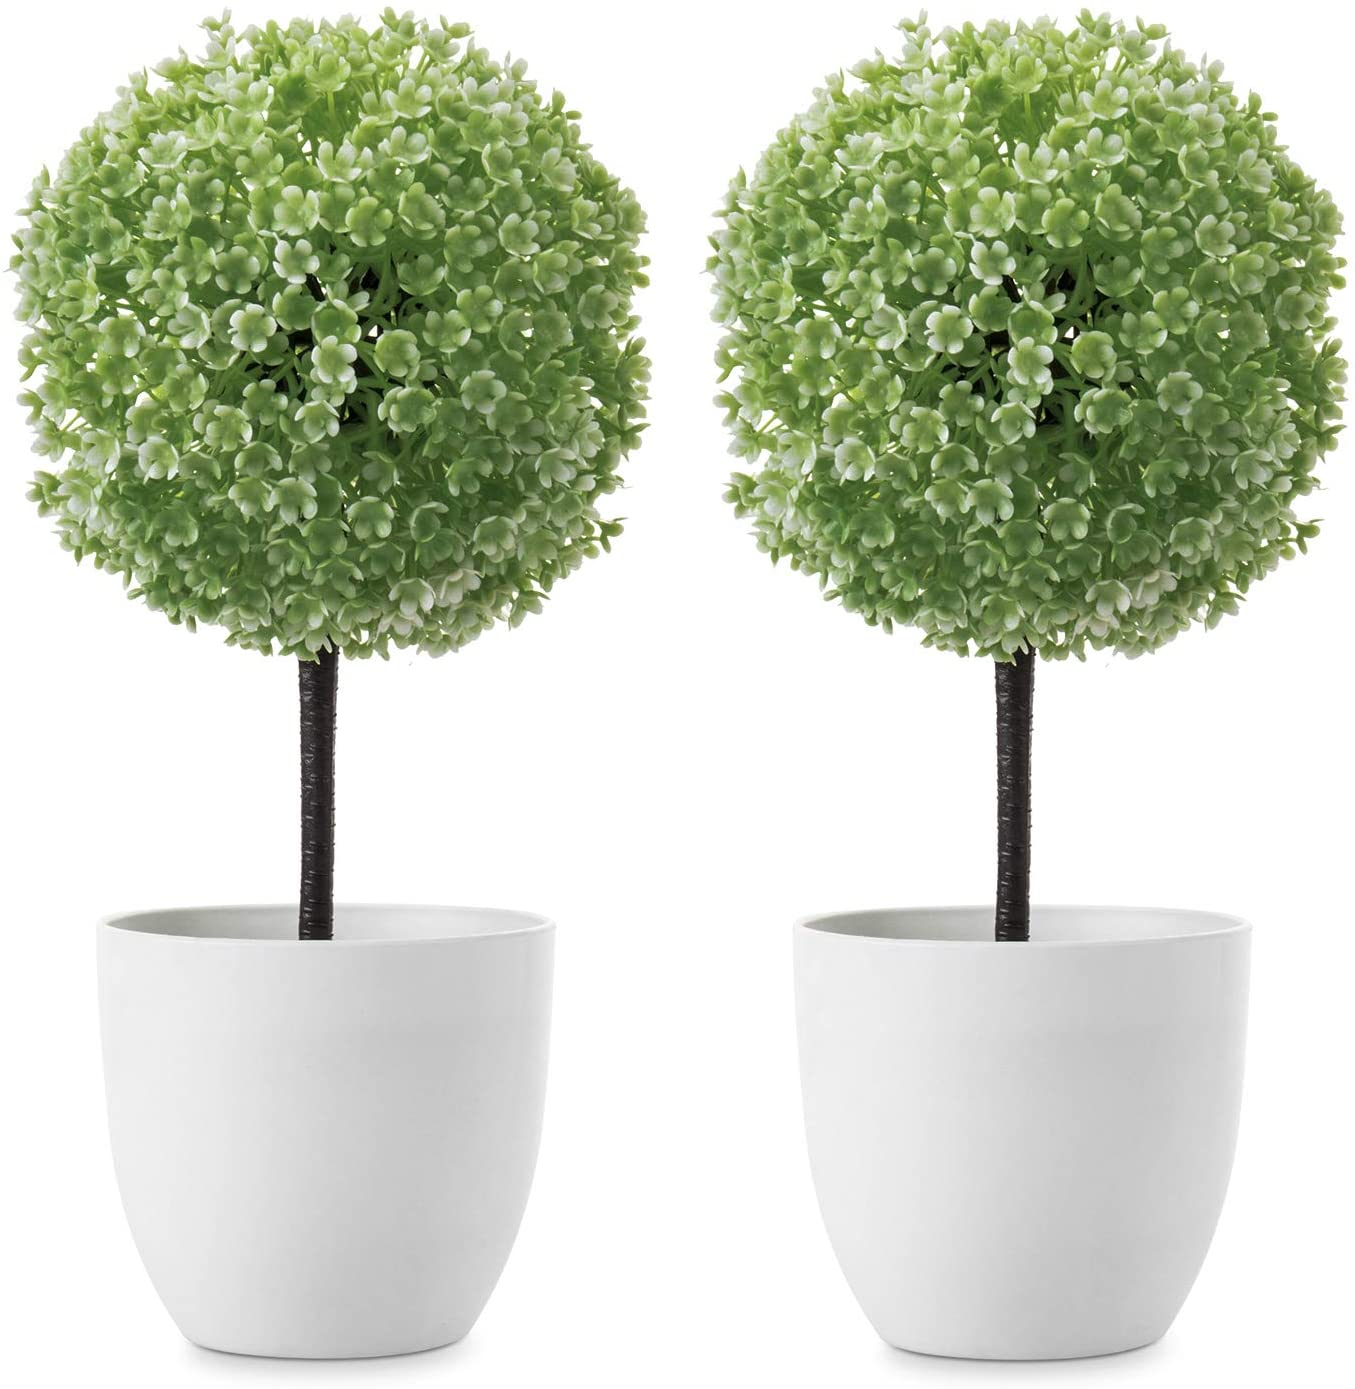 MyGift Cash special price 10 inch Artificial Faux Tabletop NEW before selling Pl White w Trees Topiary